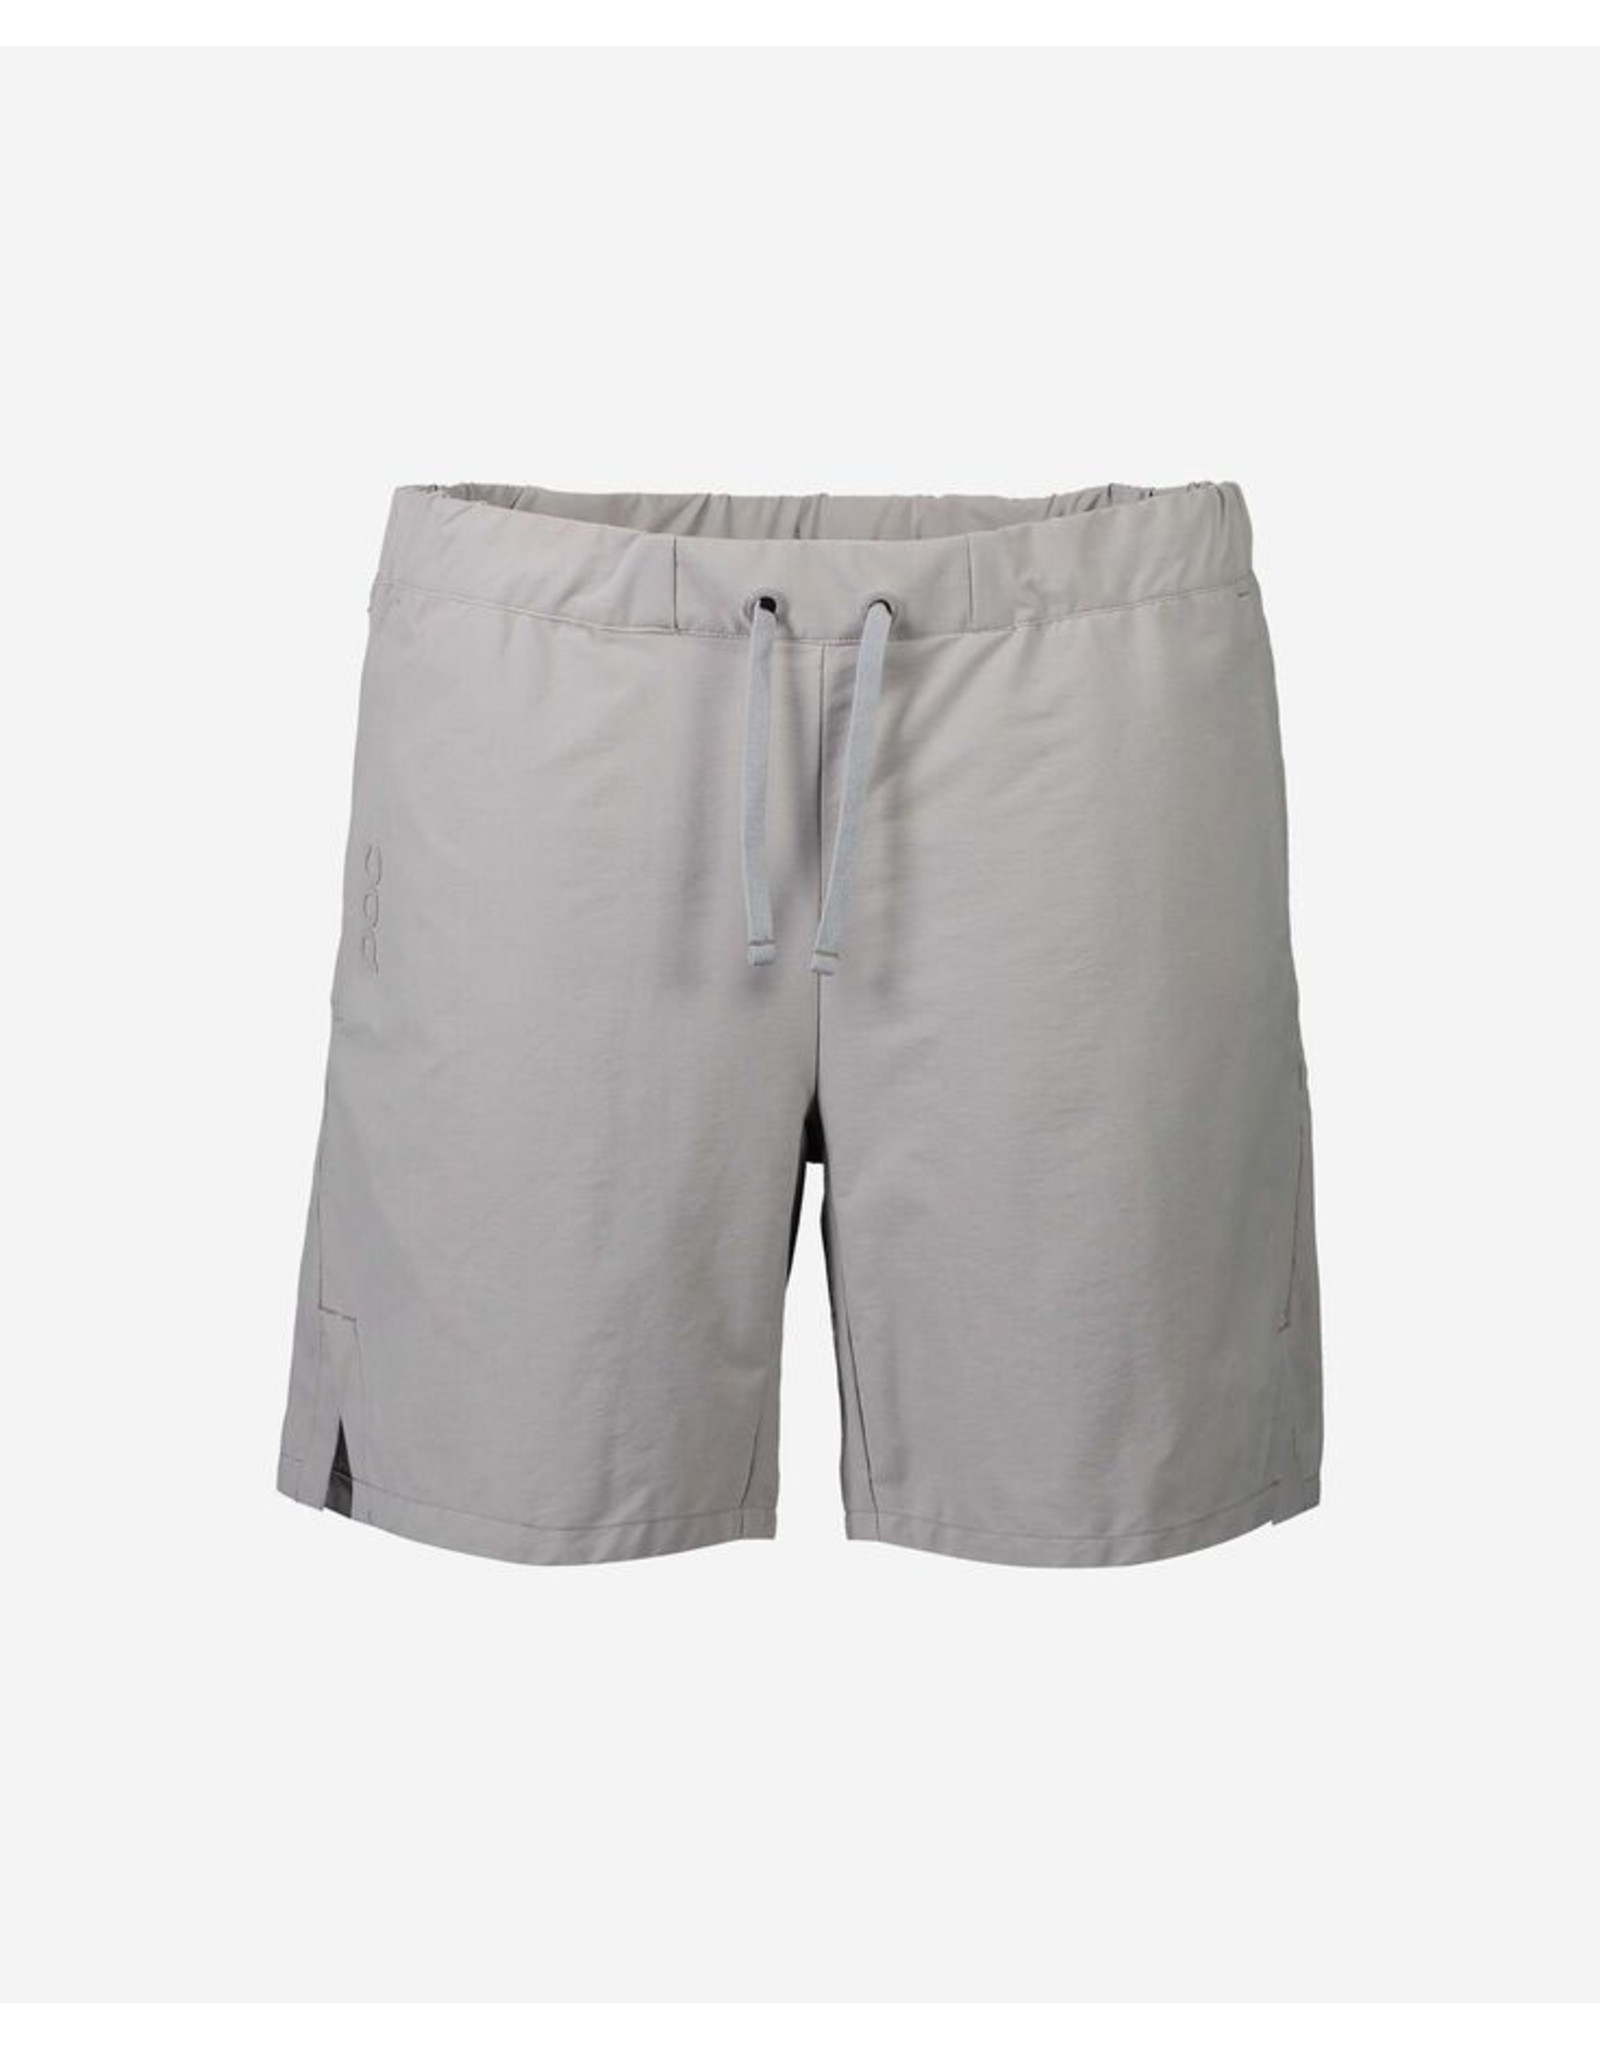 POC POC Women's Transcend Shorts